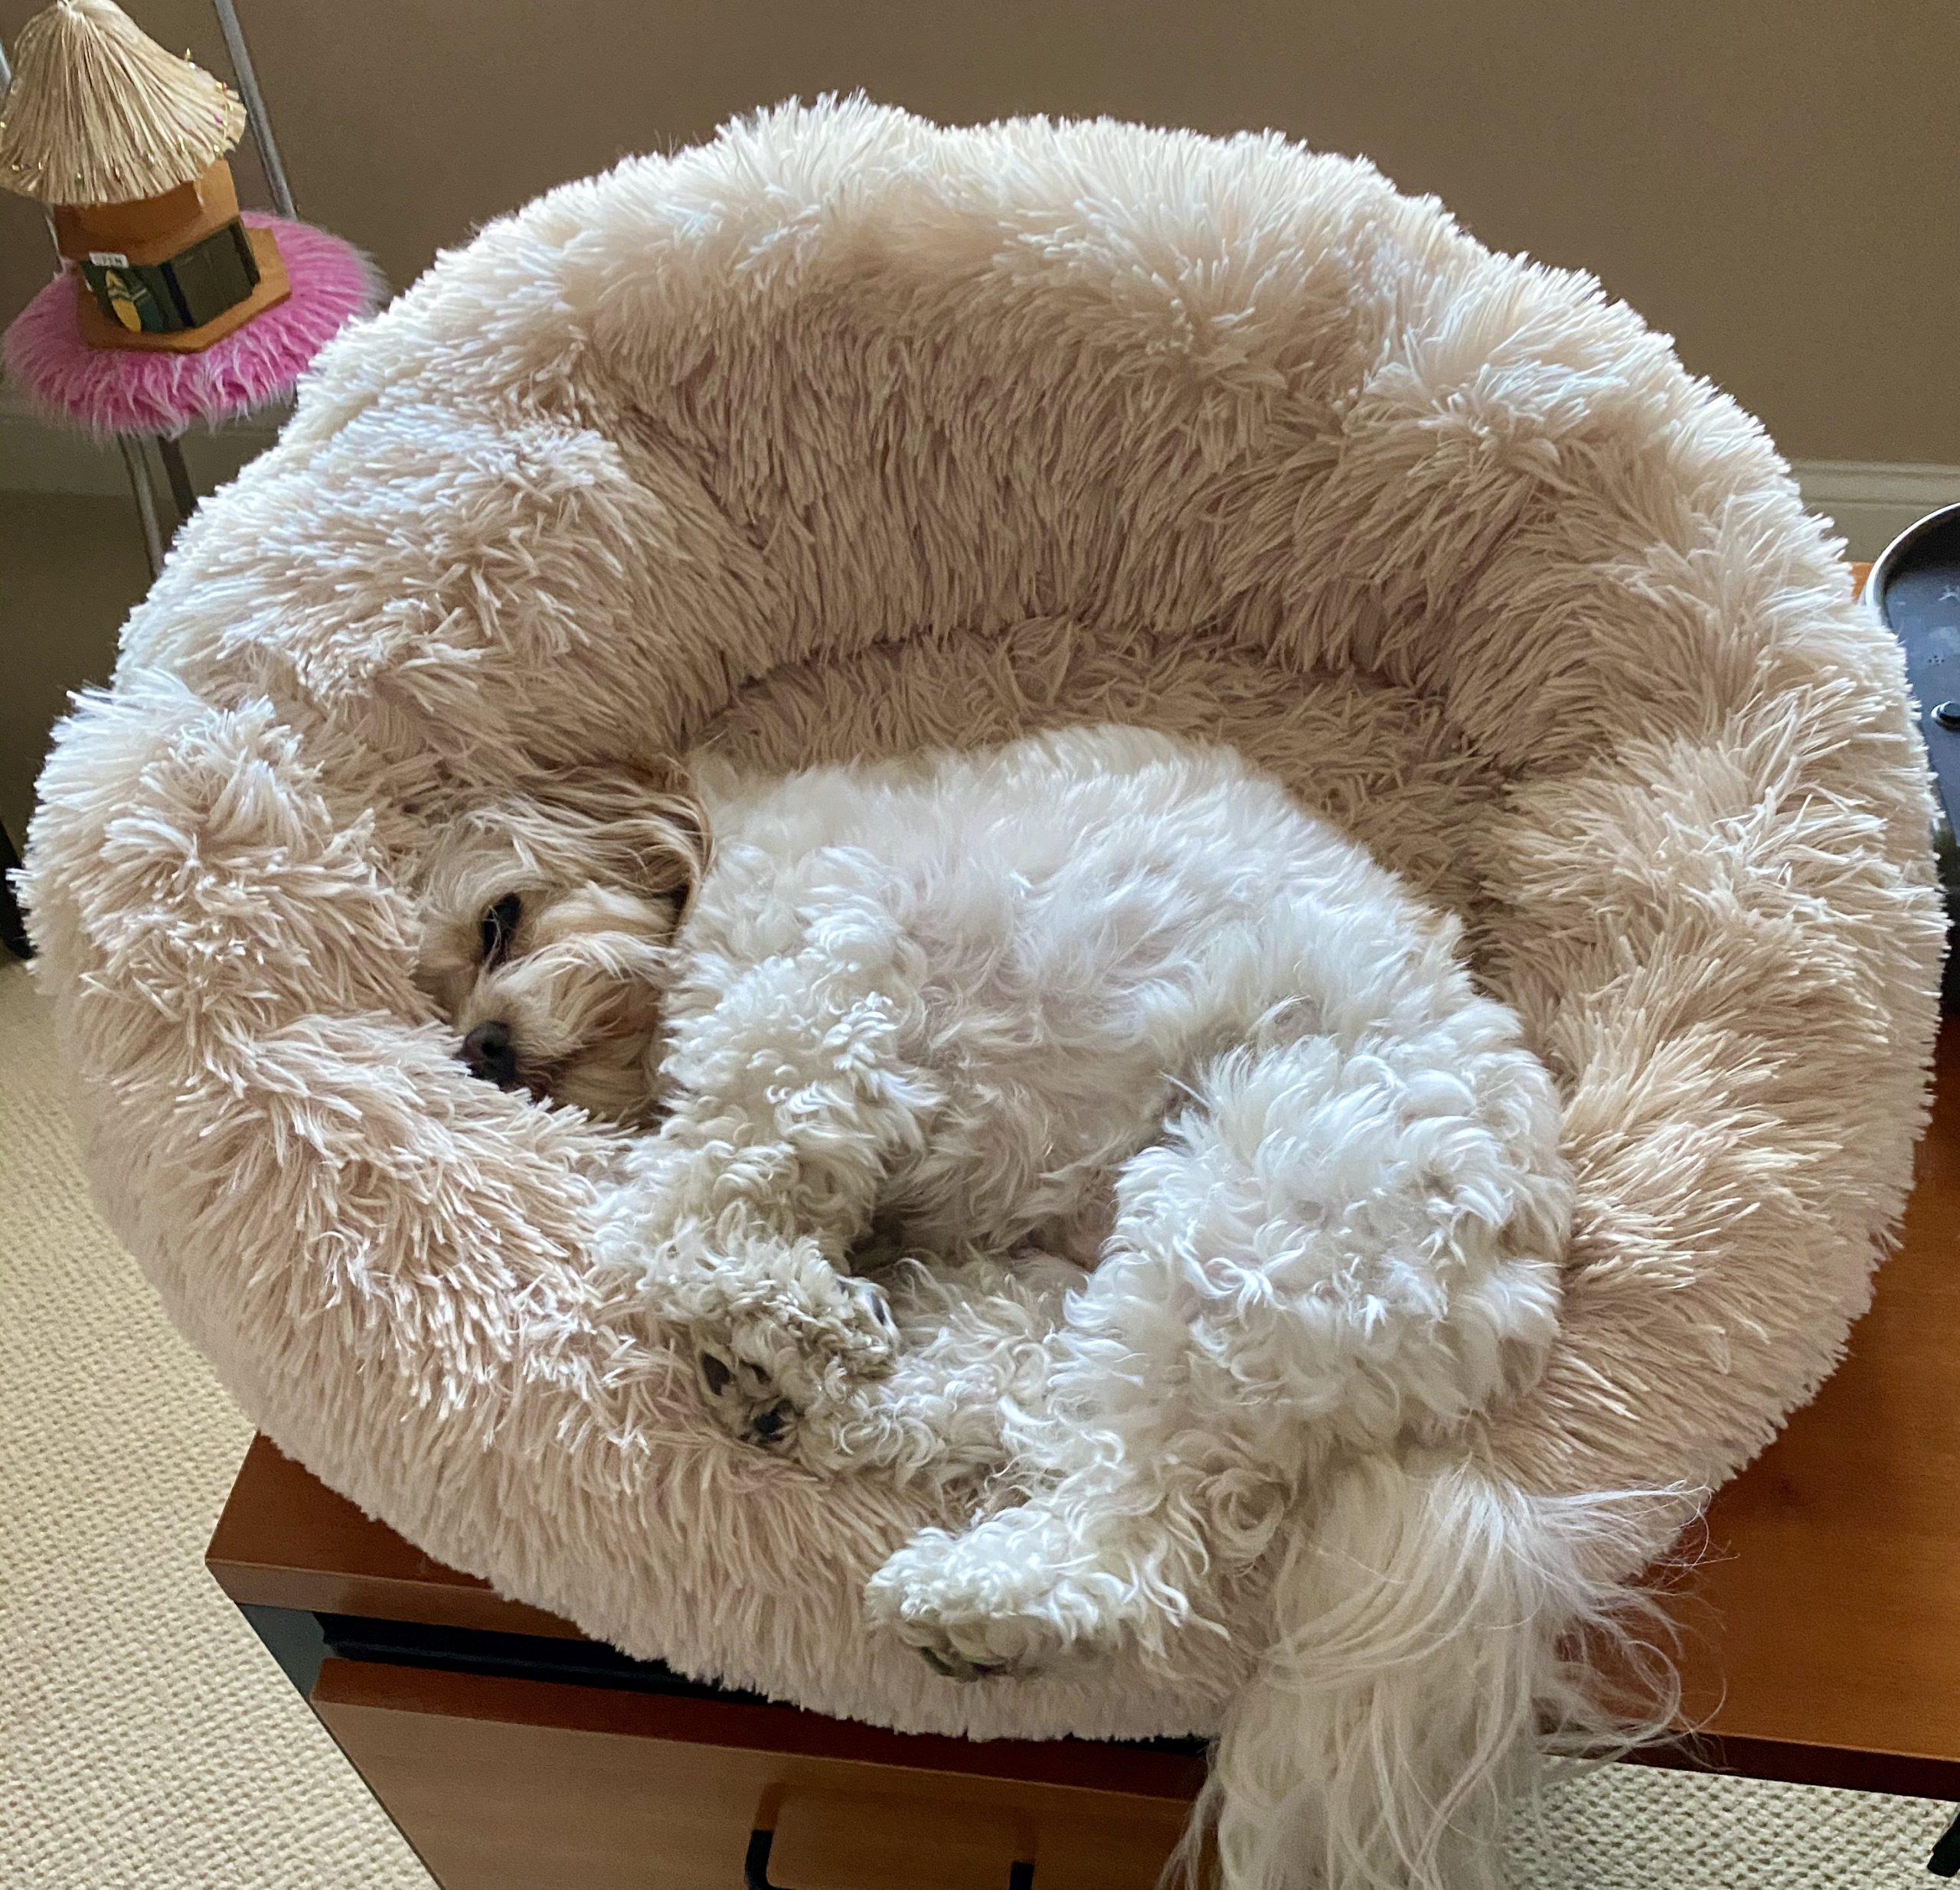 ODaisy B the Cavachon, in her Anti-Anxiety Soothing Bed for Dogs